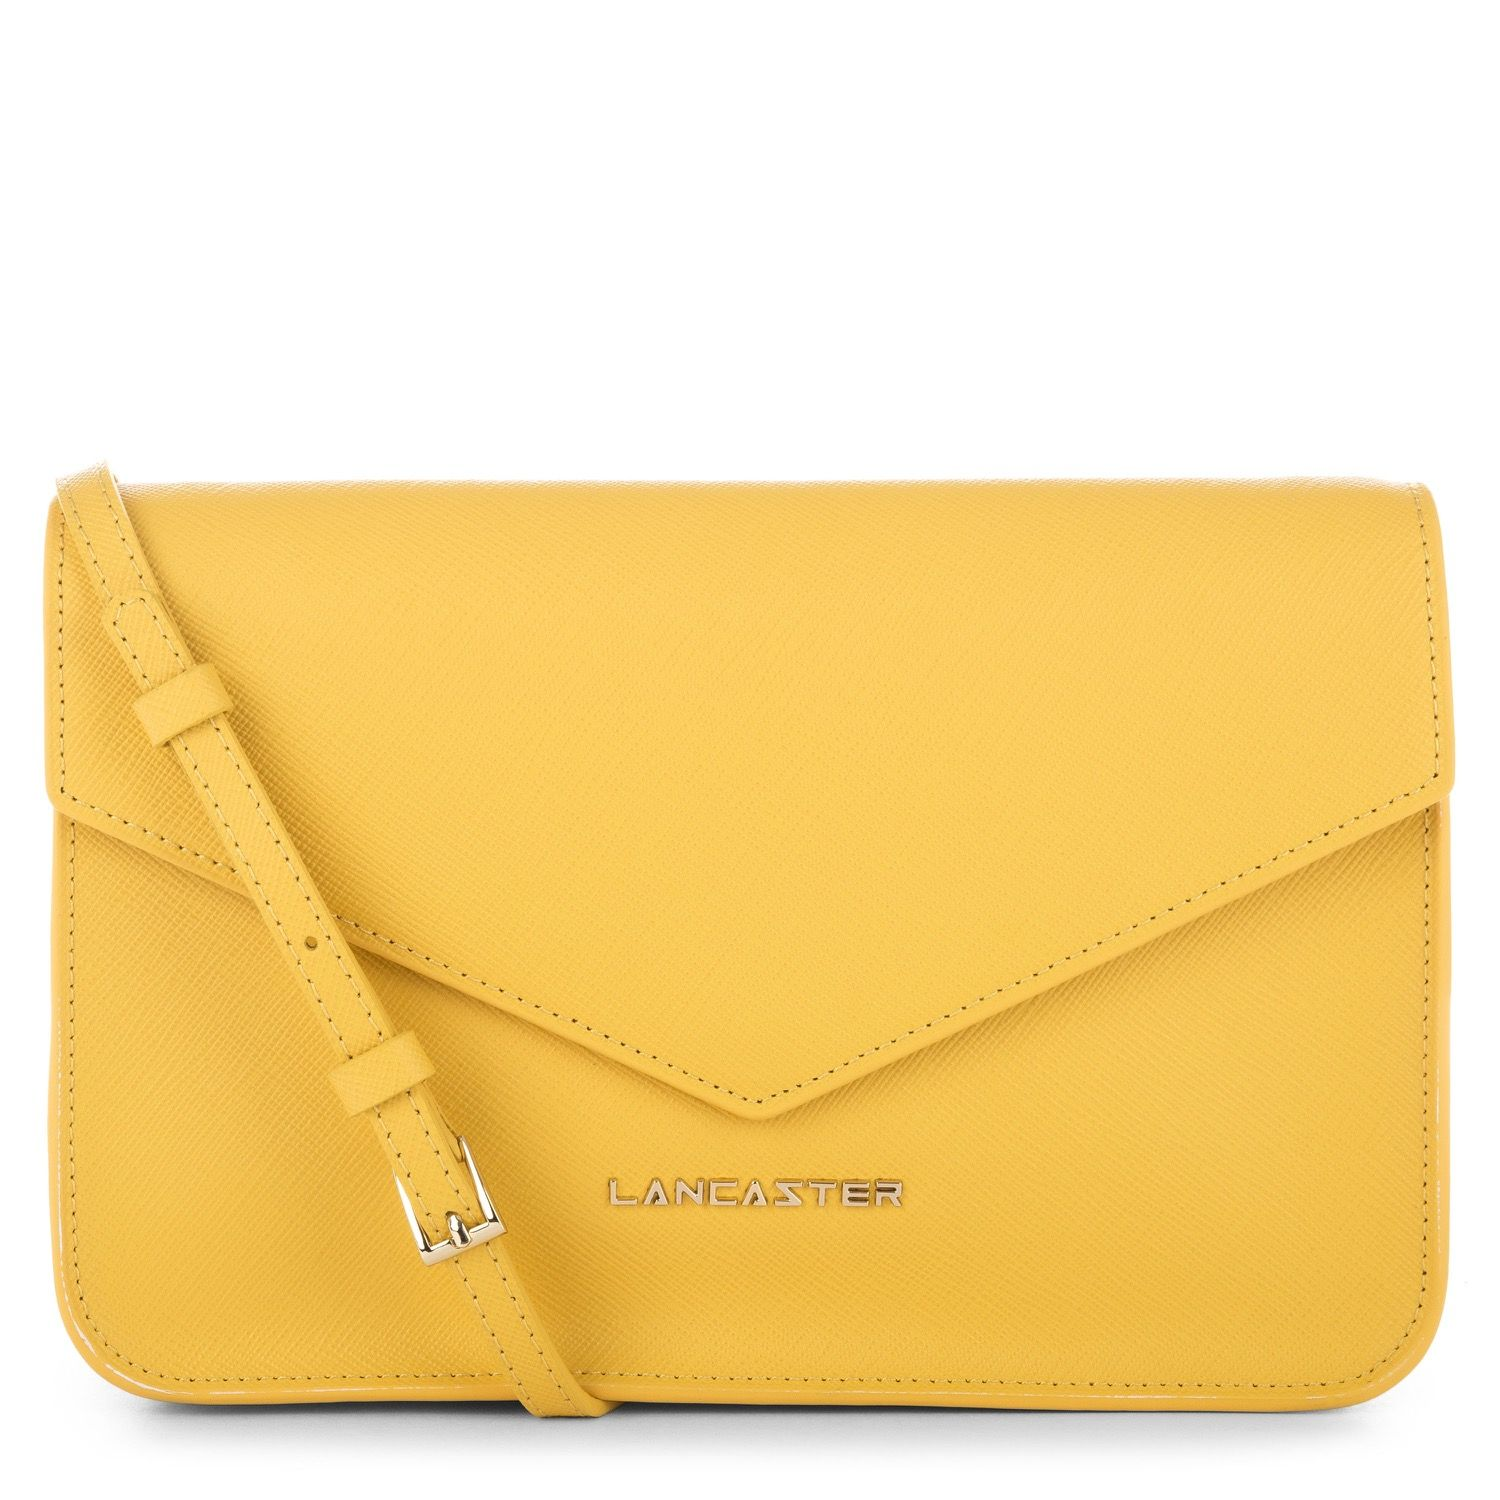 LANCASTER || 'Adeline' clutch | Clutch 'Adeline' | Yellow